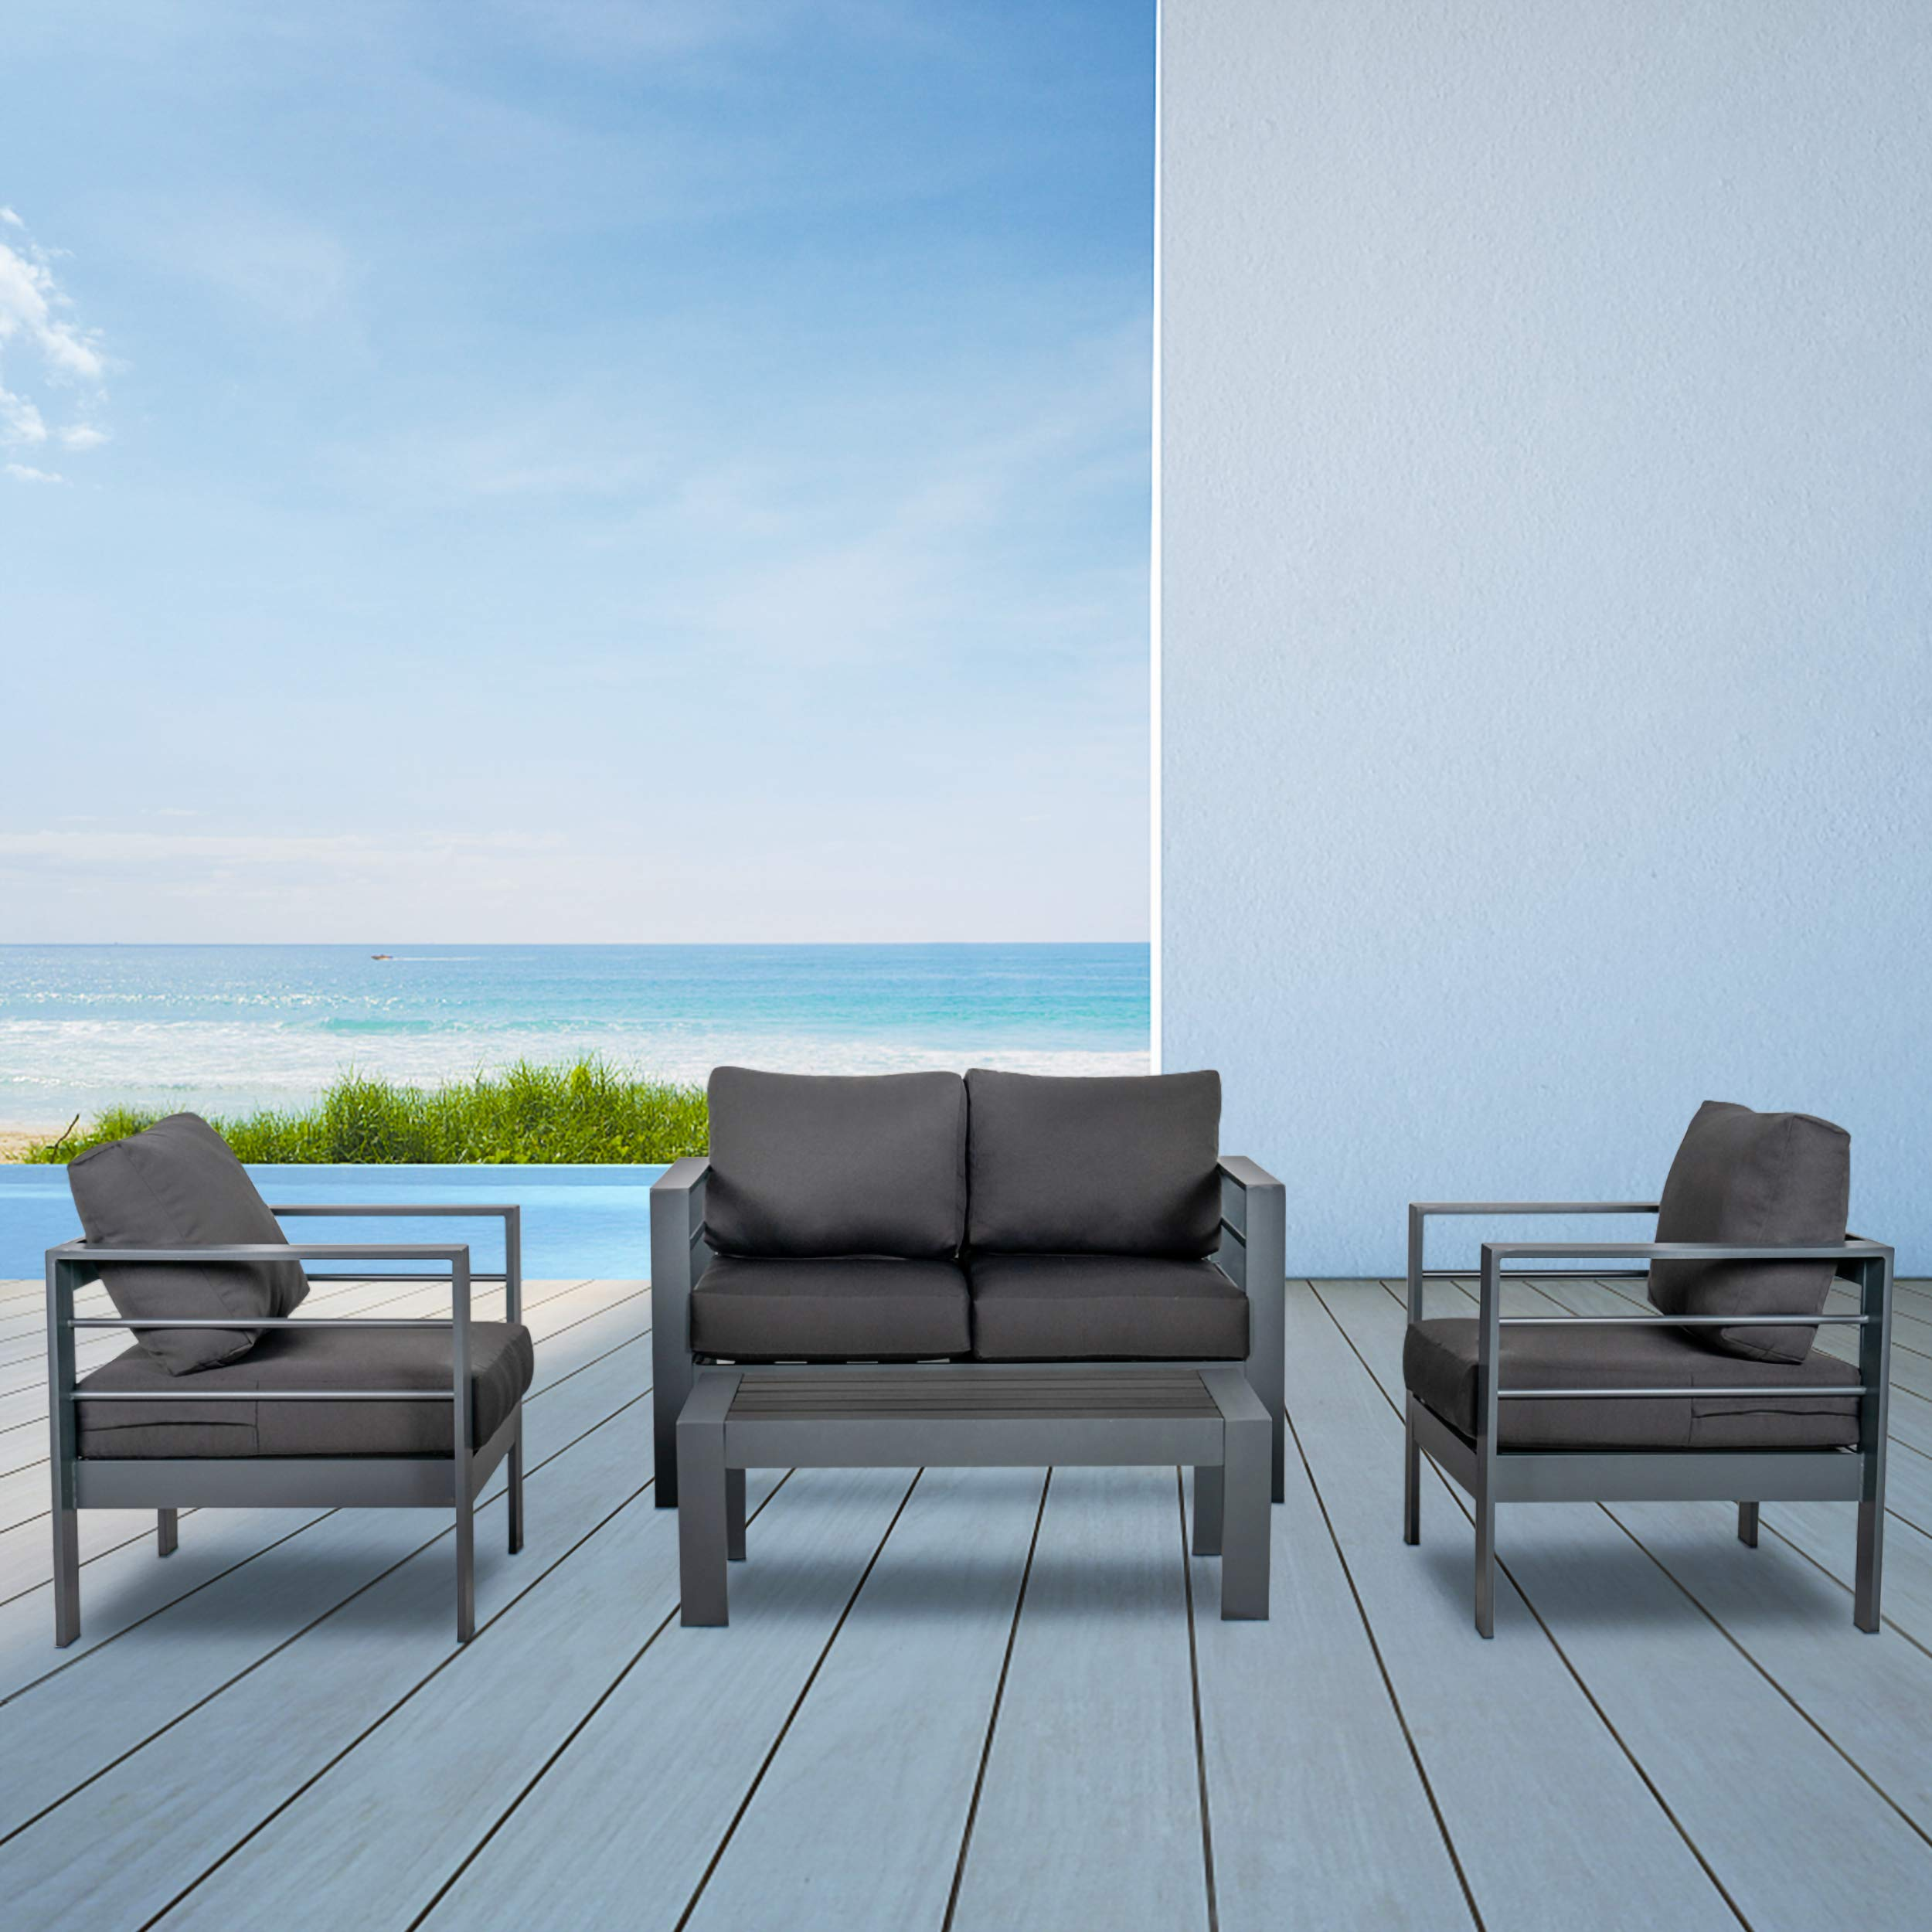 Scurrty Outdoor Patio Furniture Sets Clearance Aluminum Patio Furniture Sectional Sofa Metal Grey Conversation Set with Gr...